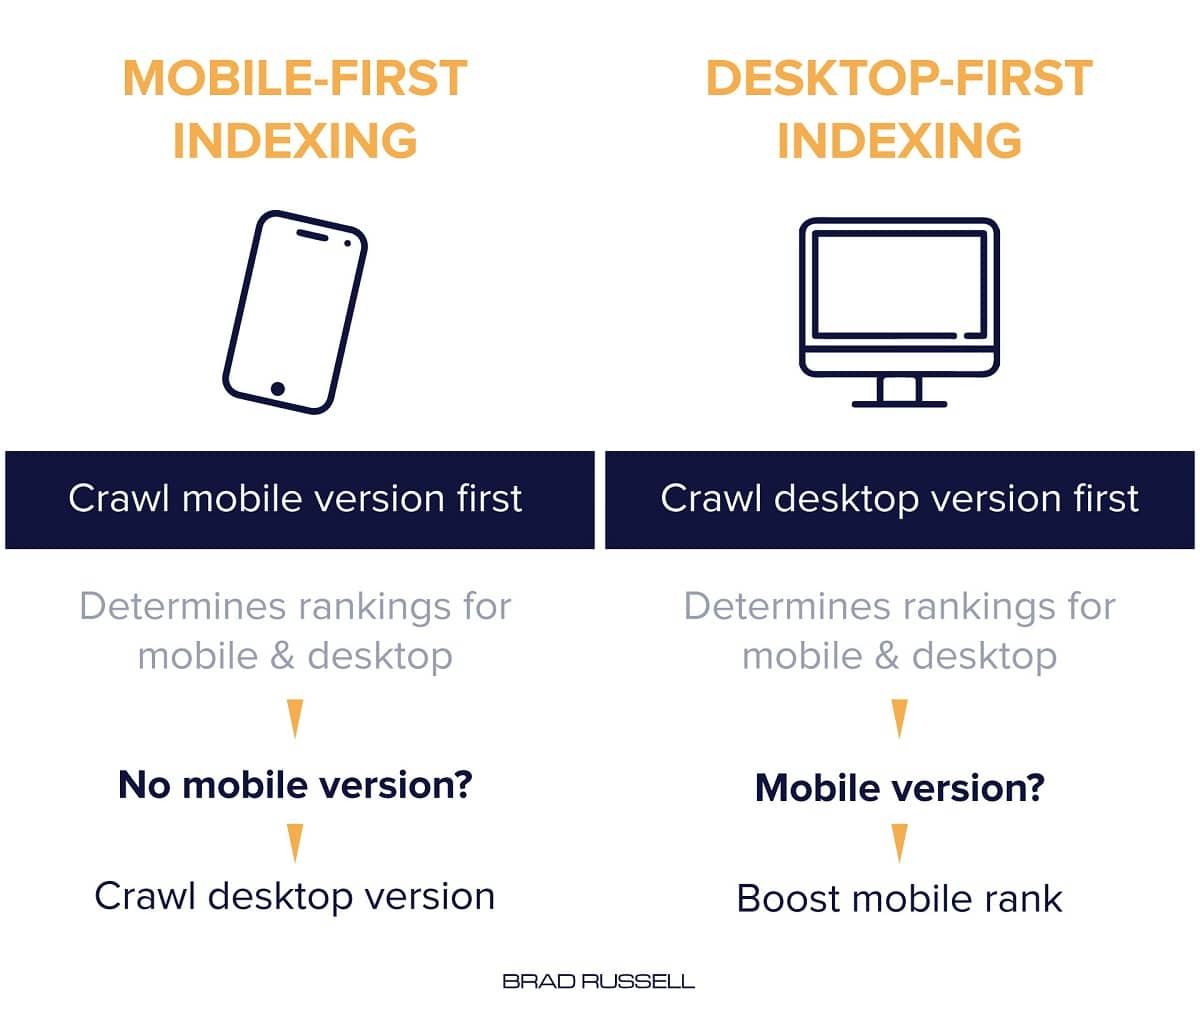 Mobile first indexing vs desktop first indexing